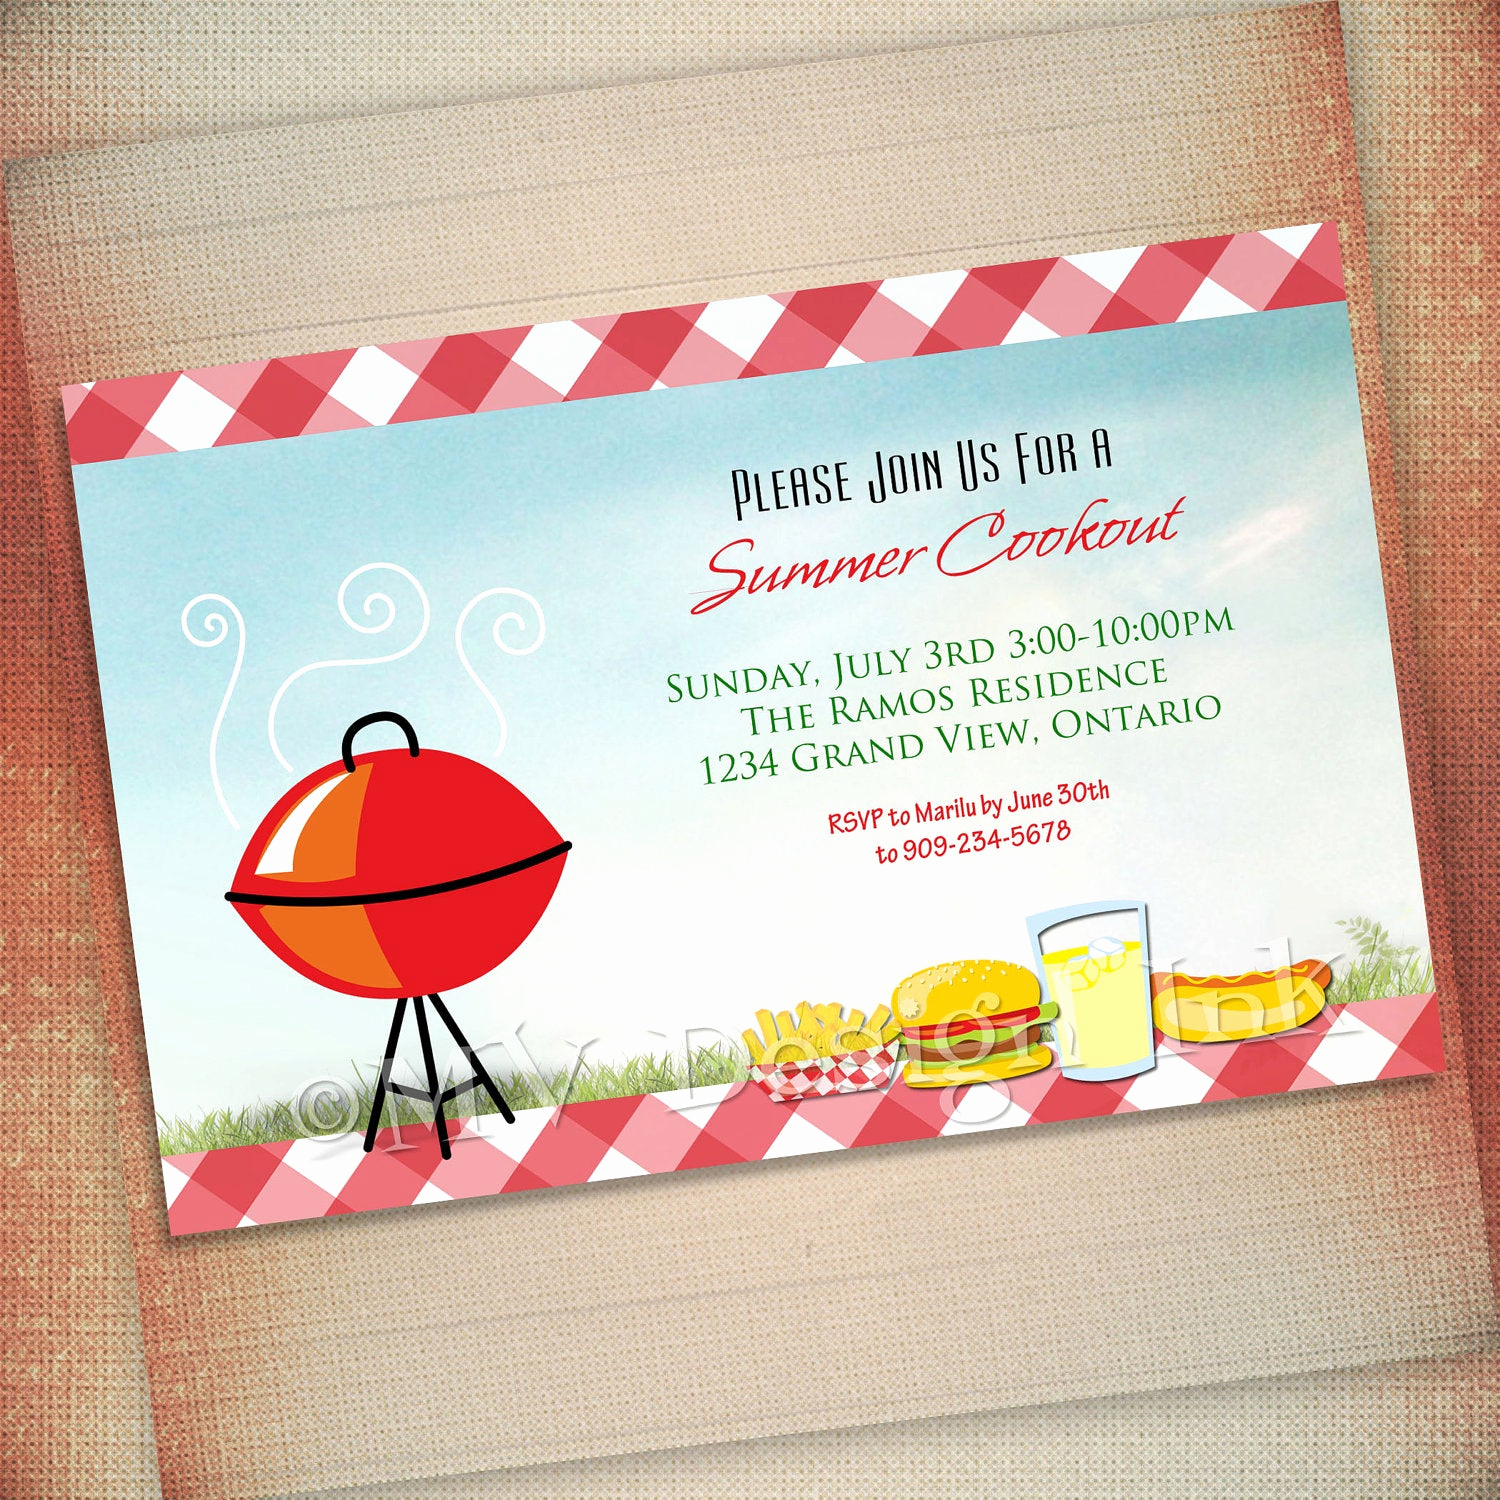 Cookout Invitation Template Free New Summer Cookout Invitation Bbq Party Invite Bbq Birthday